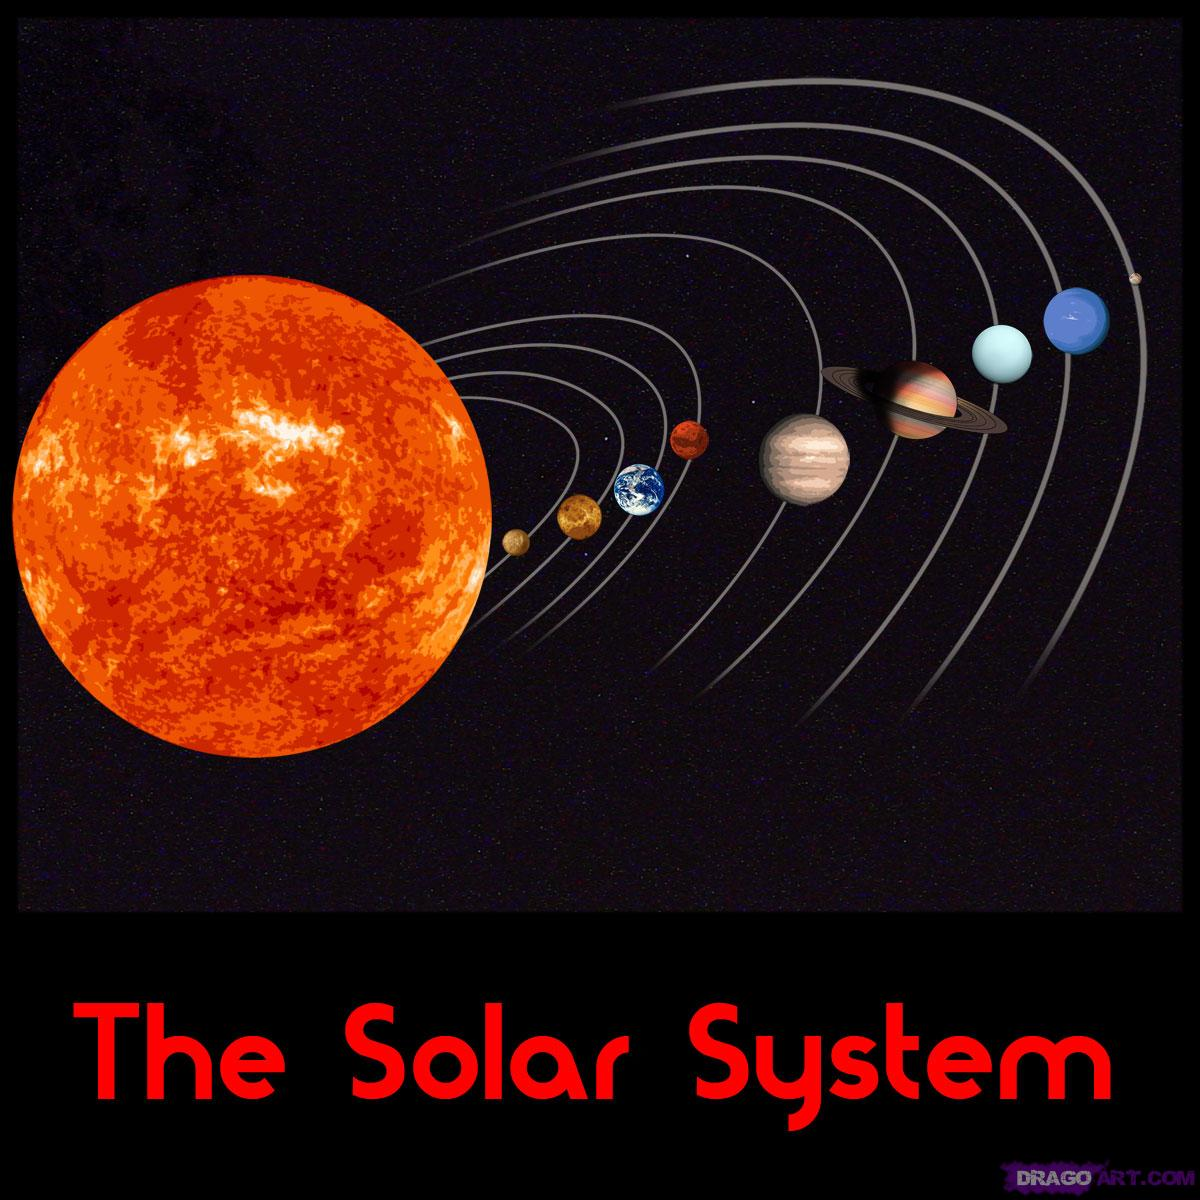 Drawn amd solar system By Step to the system